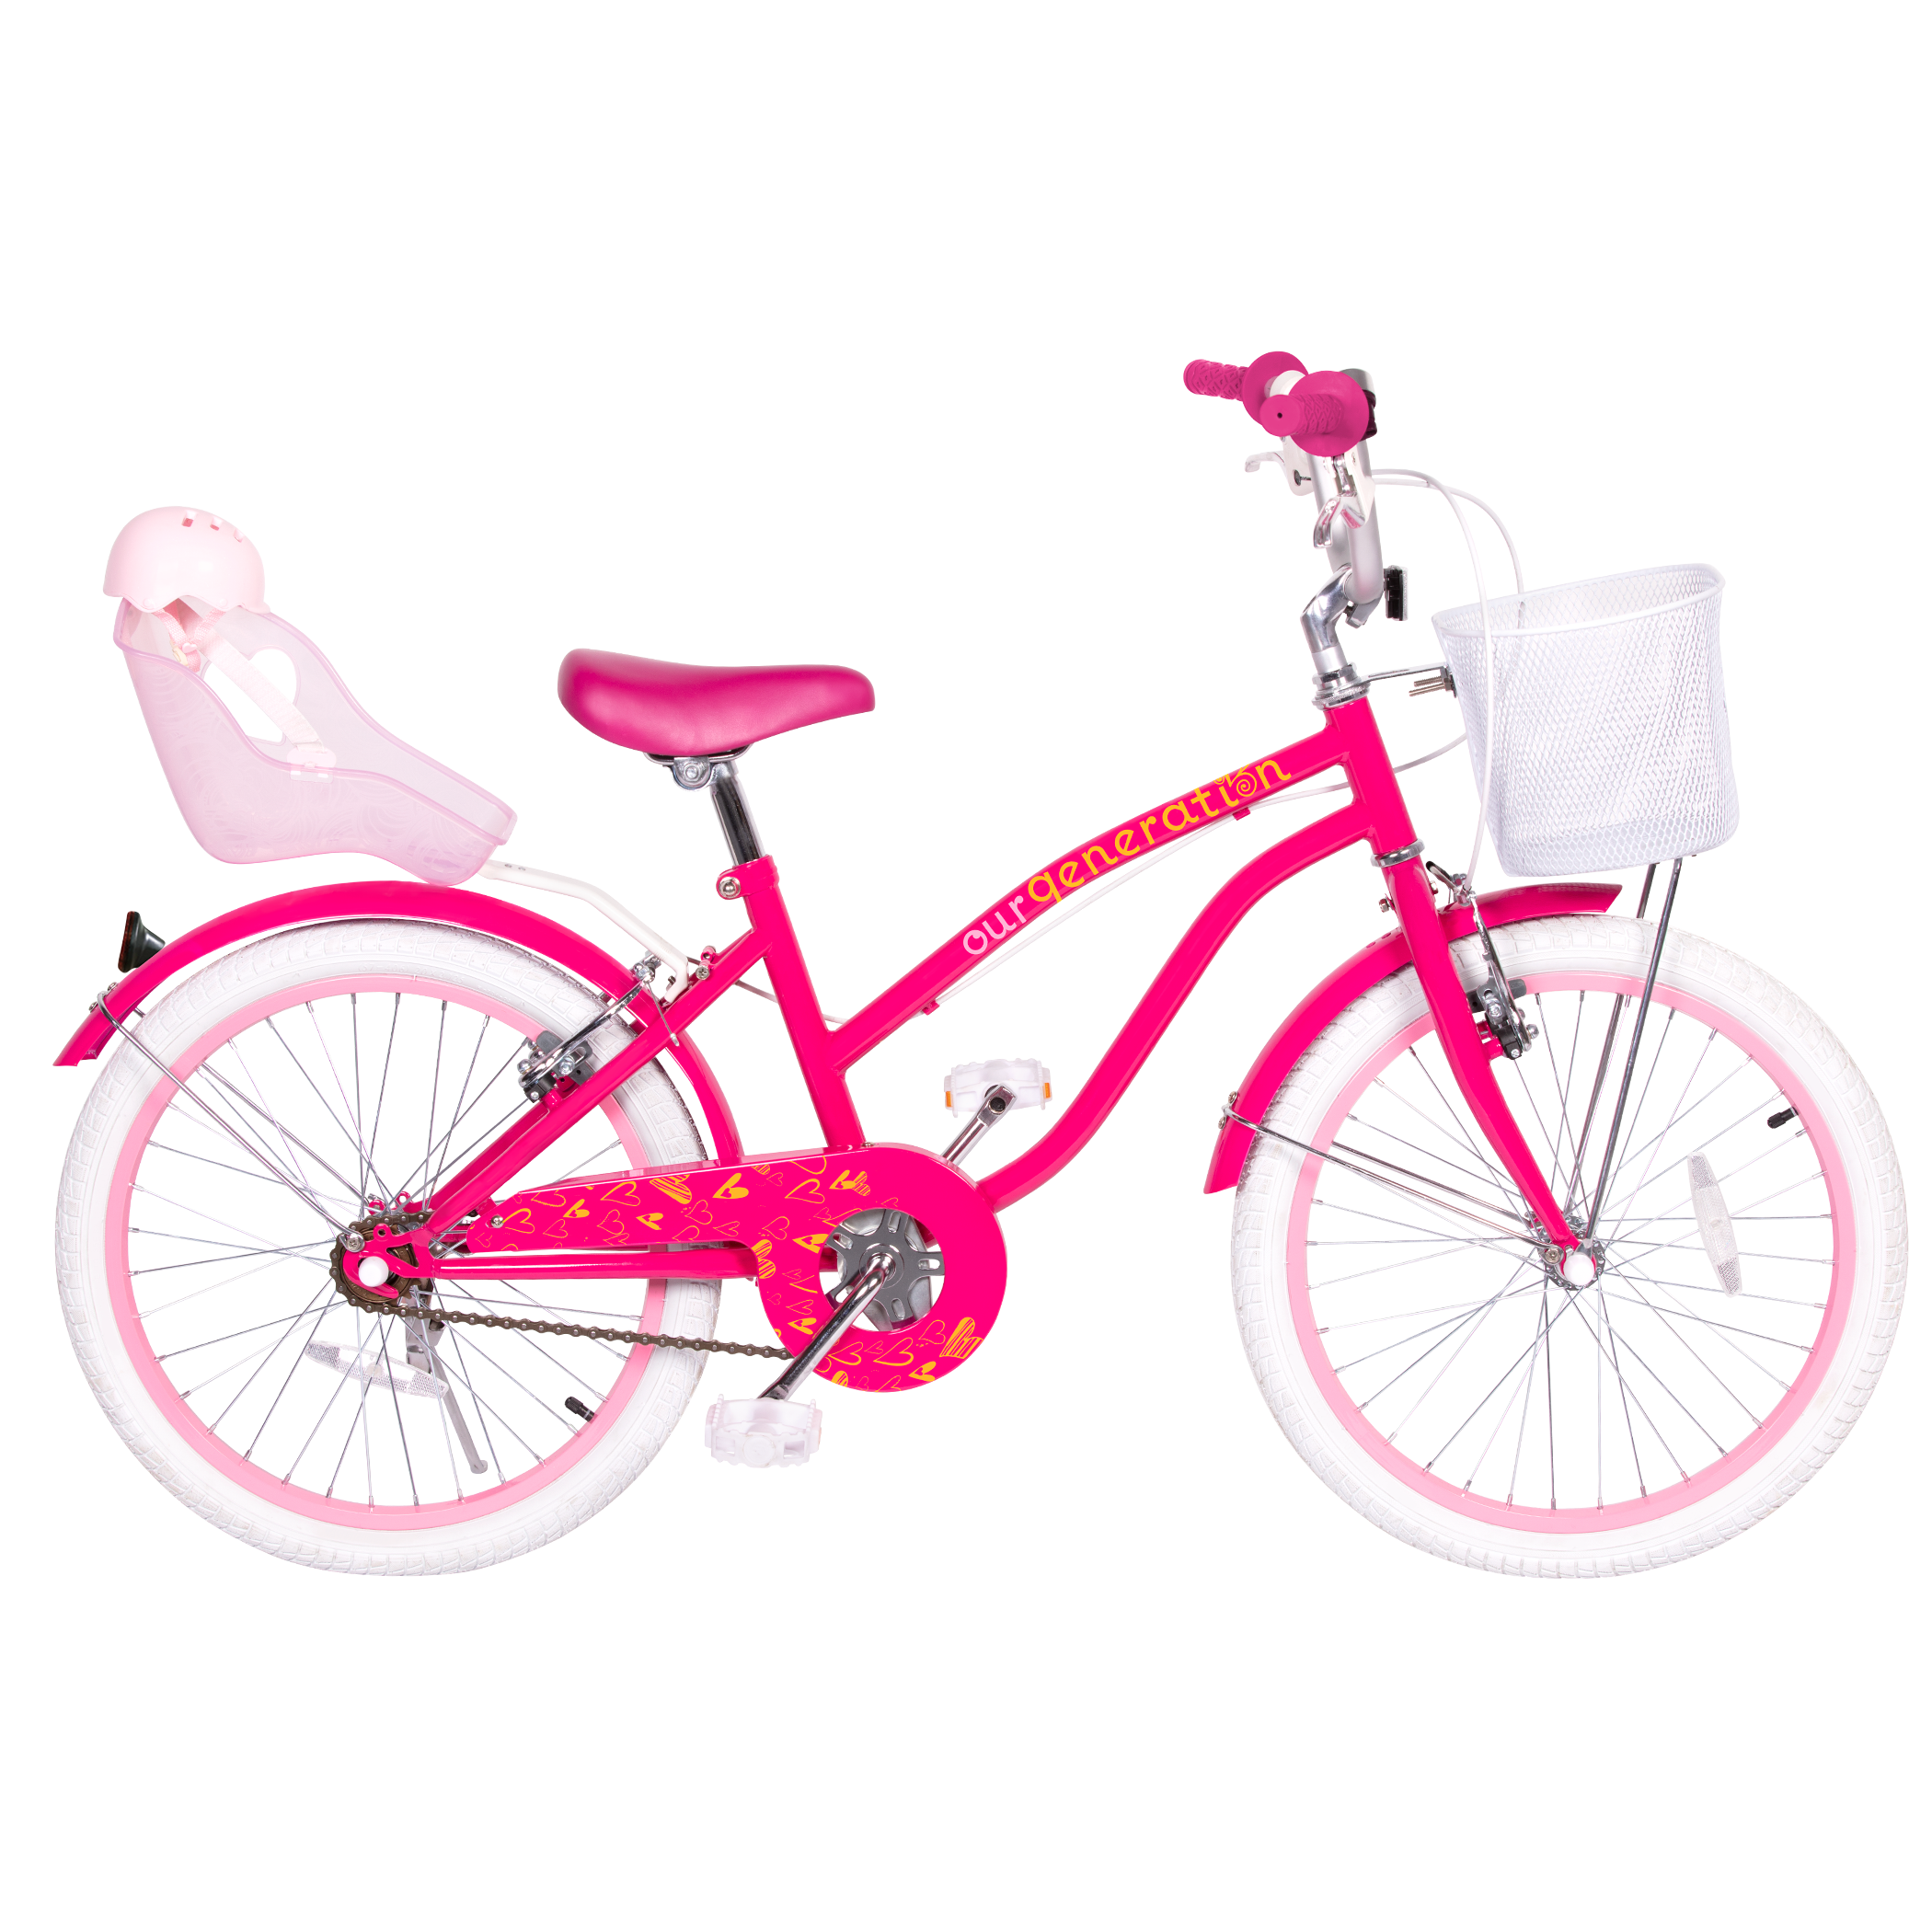 OG Bicycle for kids